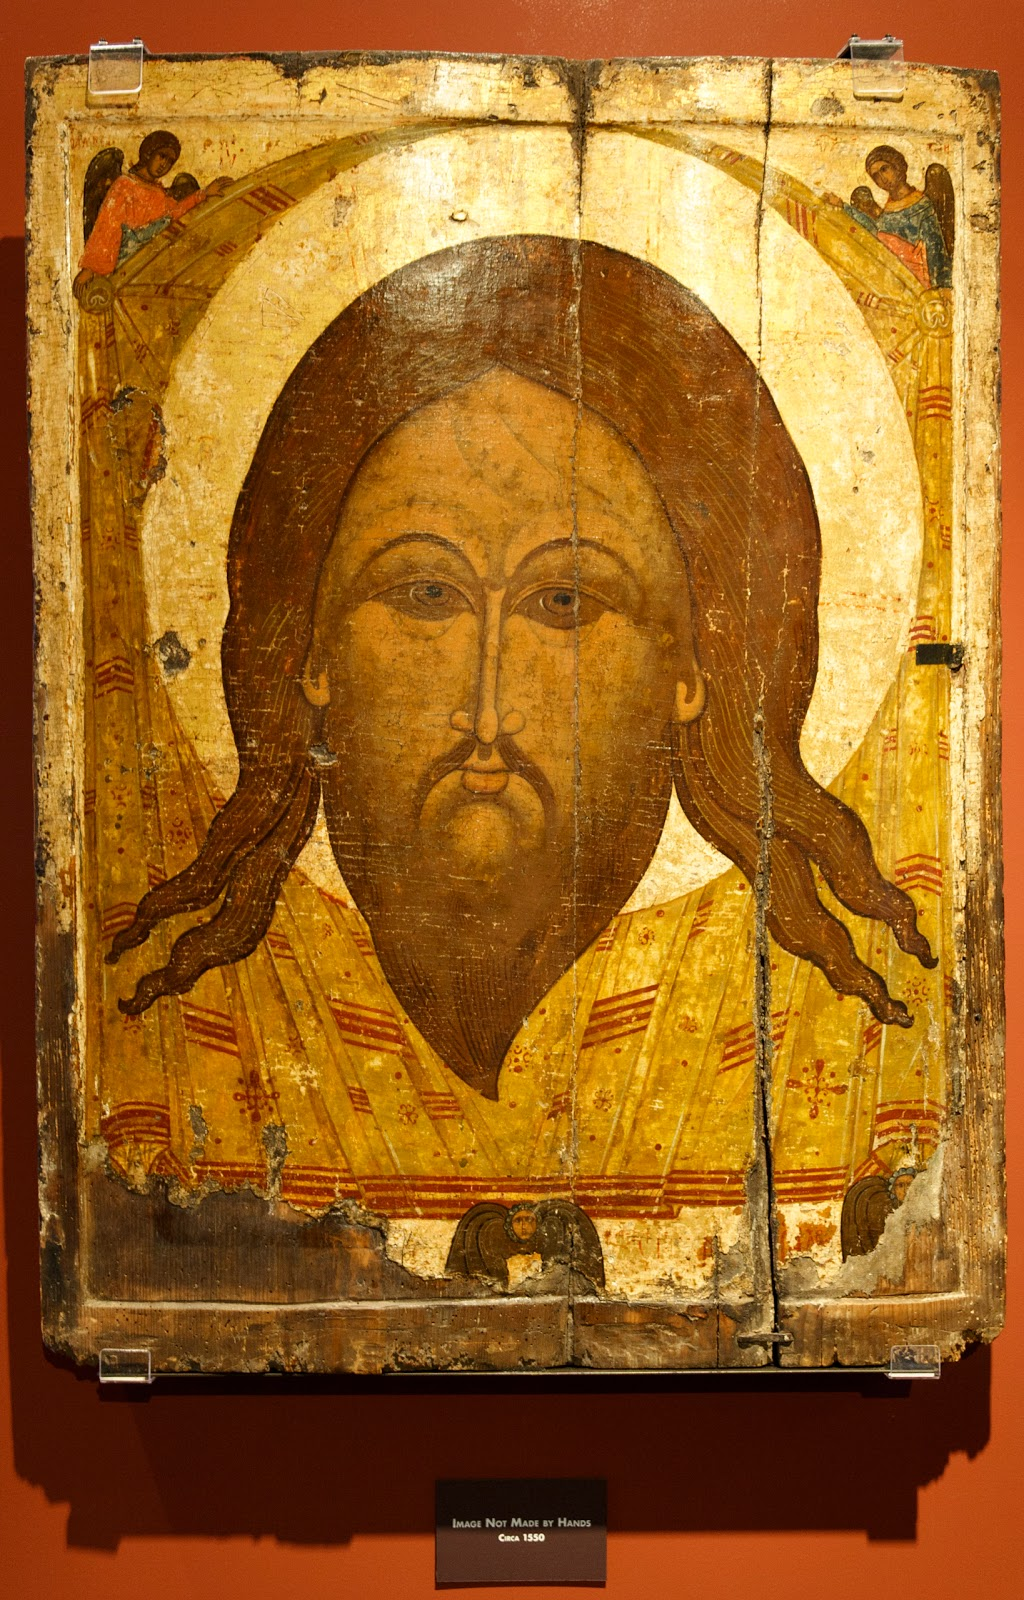 Russian Icons -- Windows to Eternity: literarygracenotes.blogspot.com/2011/09/russian-icons-windows-to...